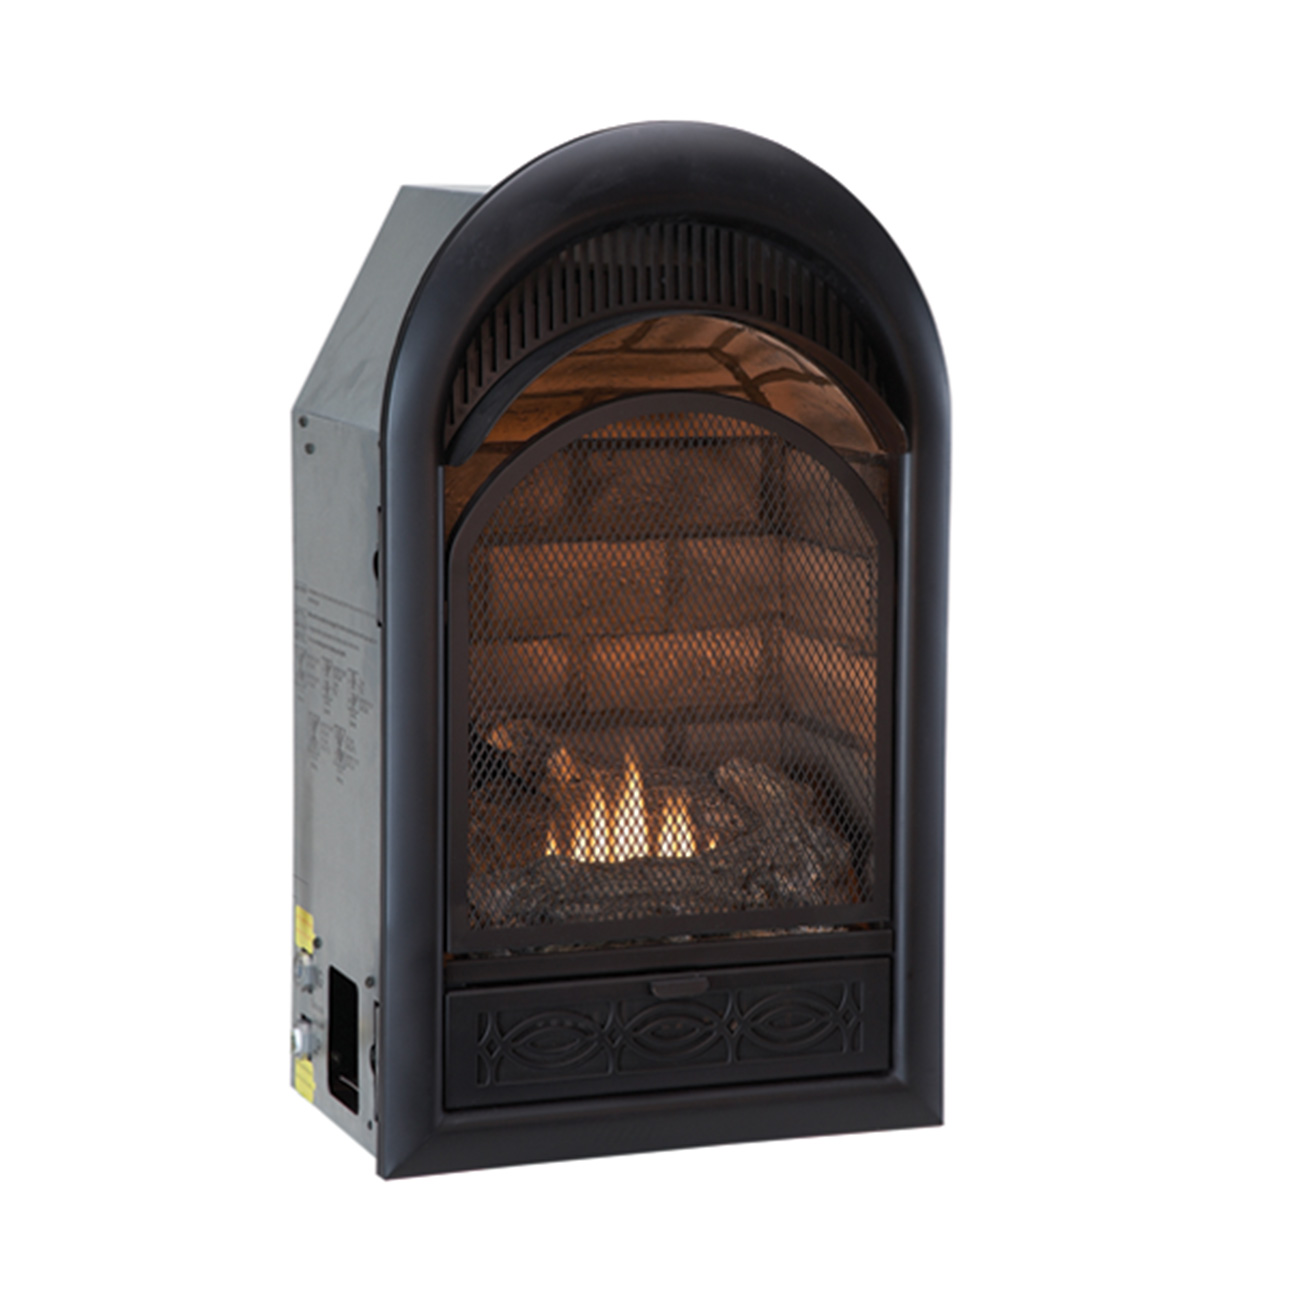 fuel btu brick dual ventless t product garden vent duluth forge free shipping overstock liner home insert fireplace stat model today